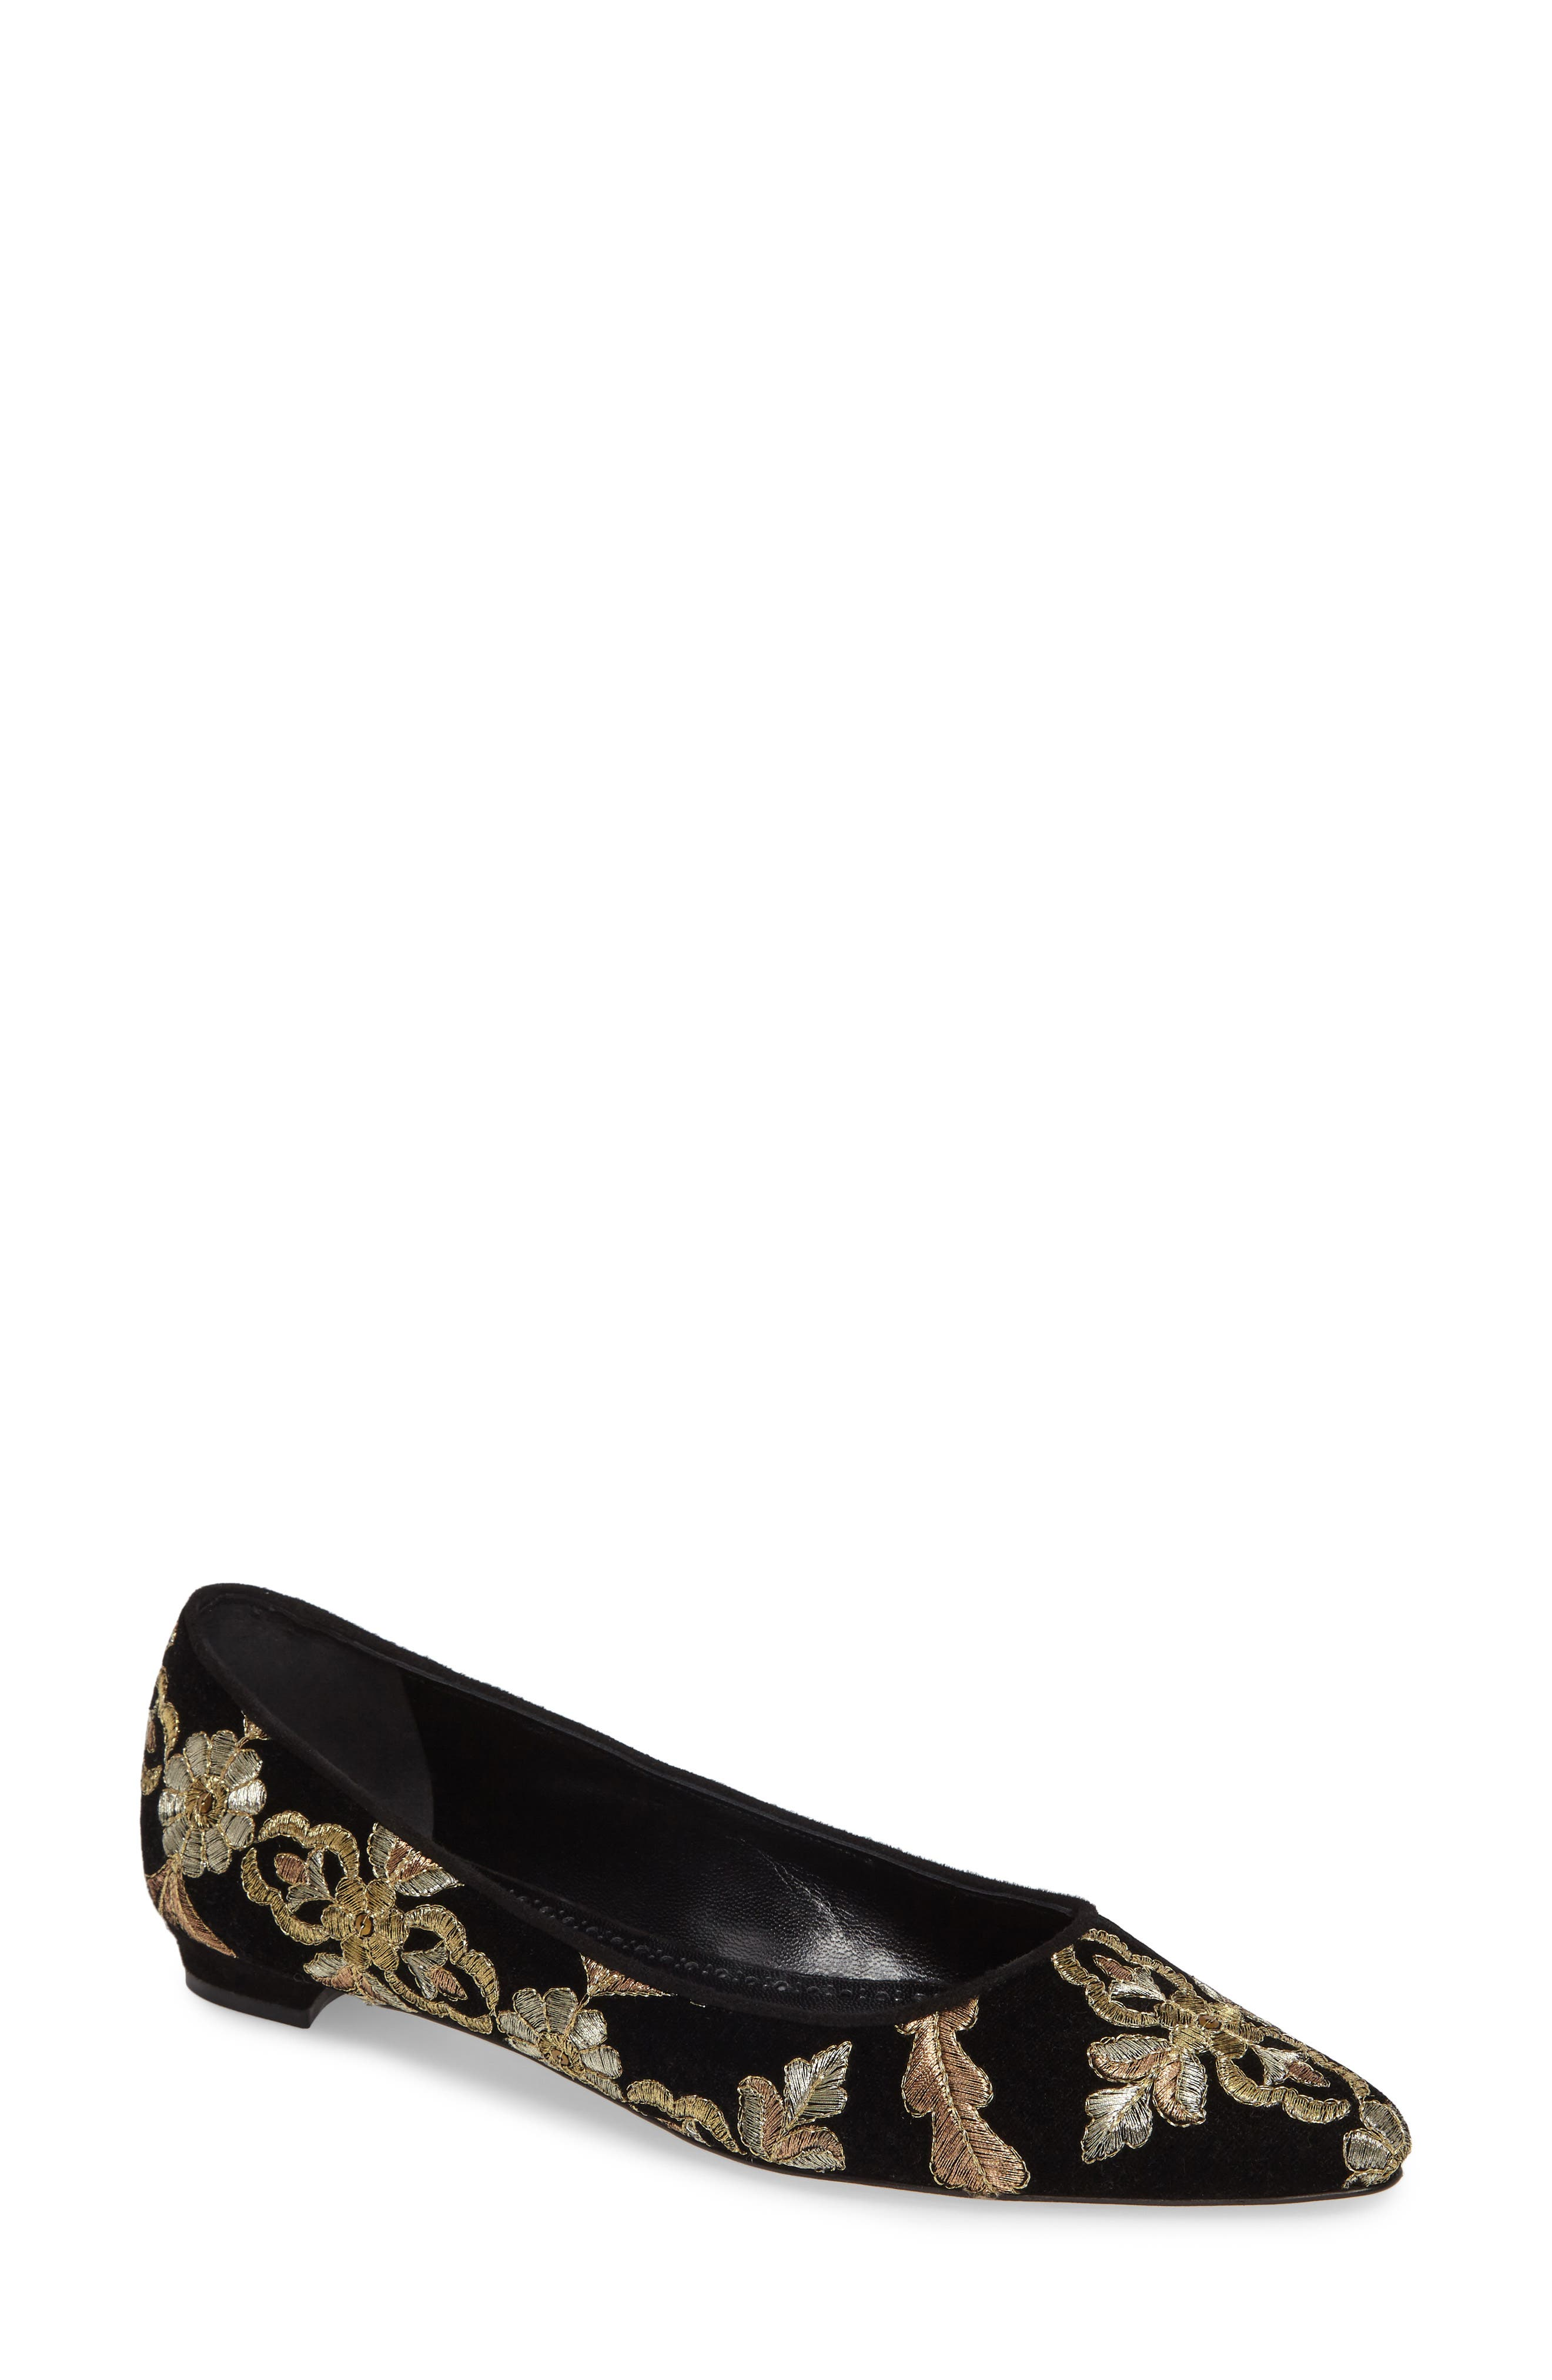 MANOLO BLAHNIK Tittermo Floral Embroidered Ballet Flat